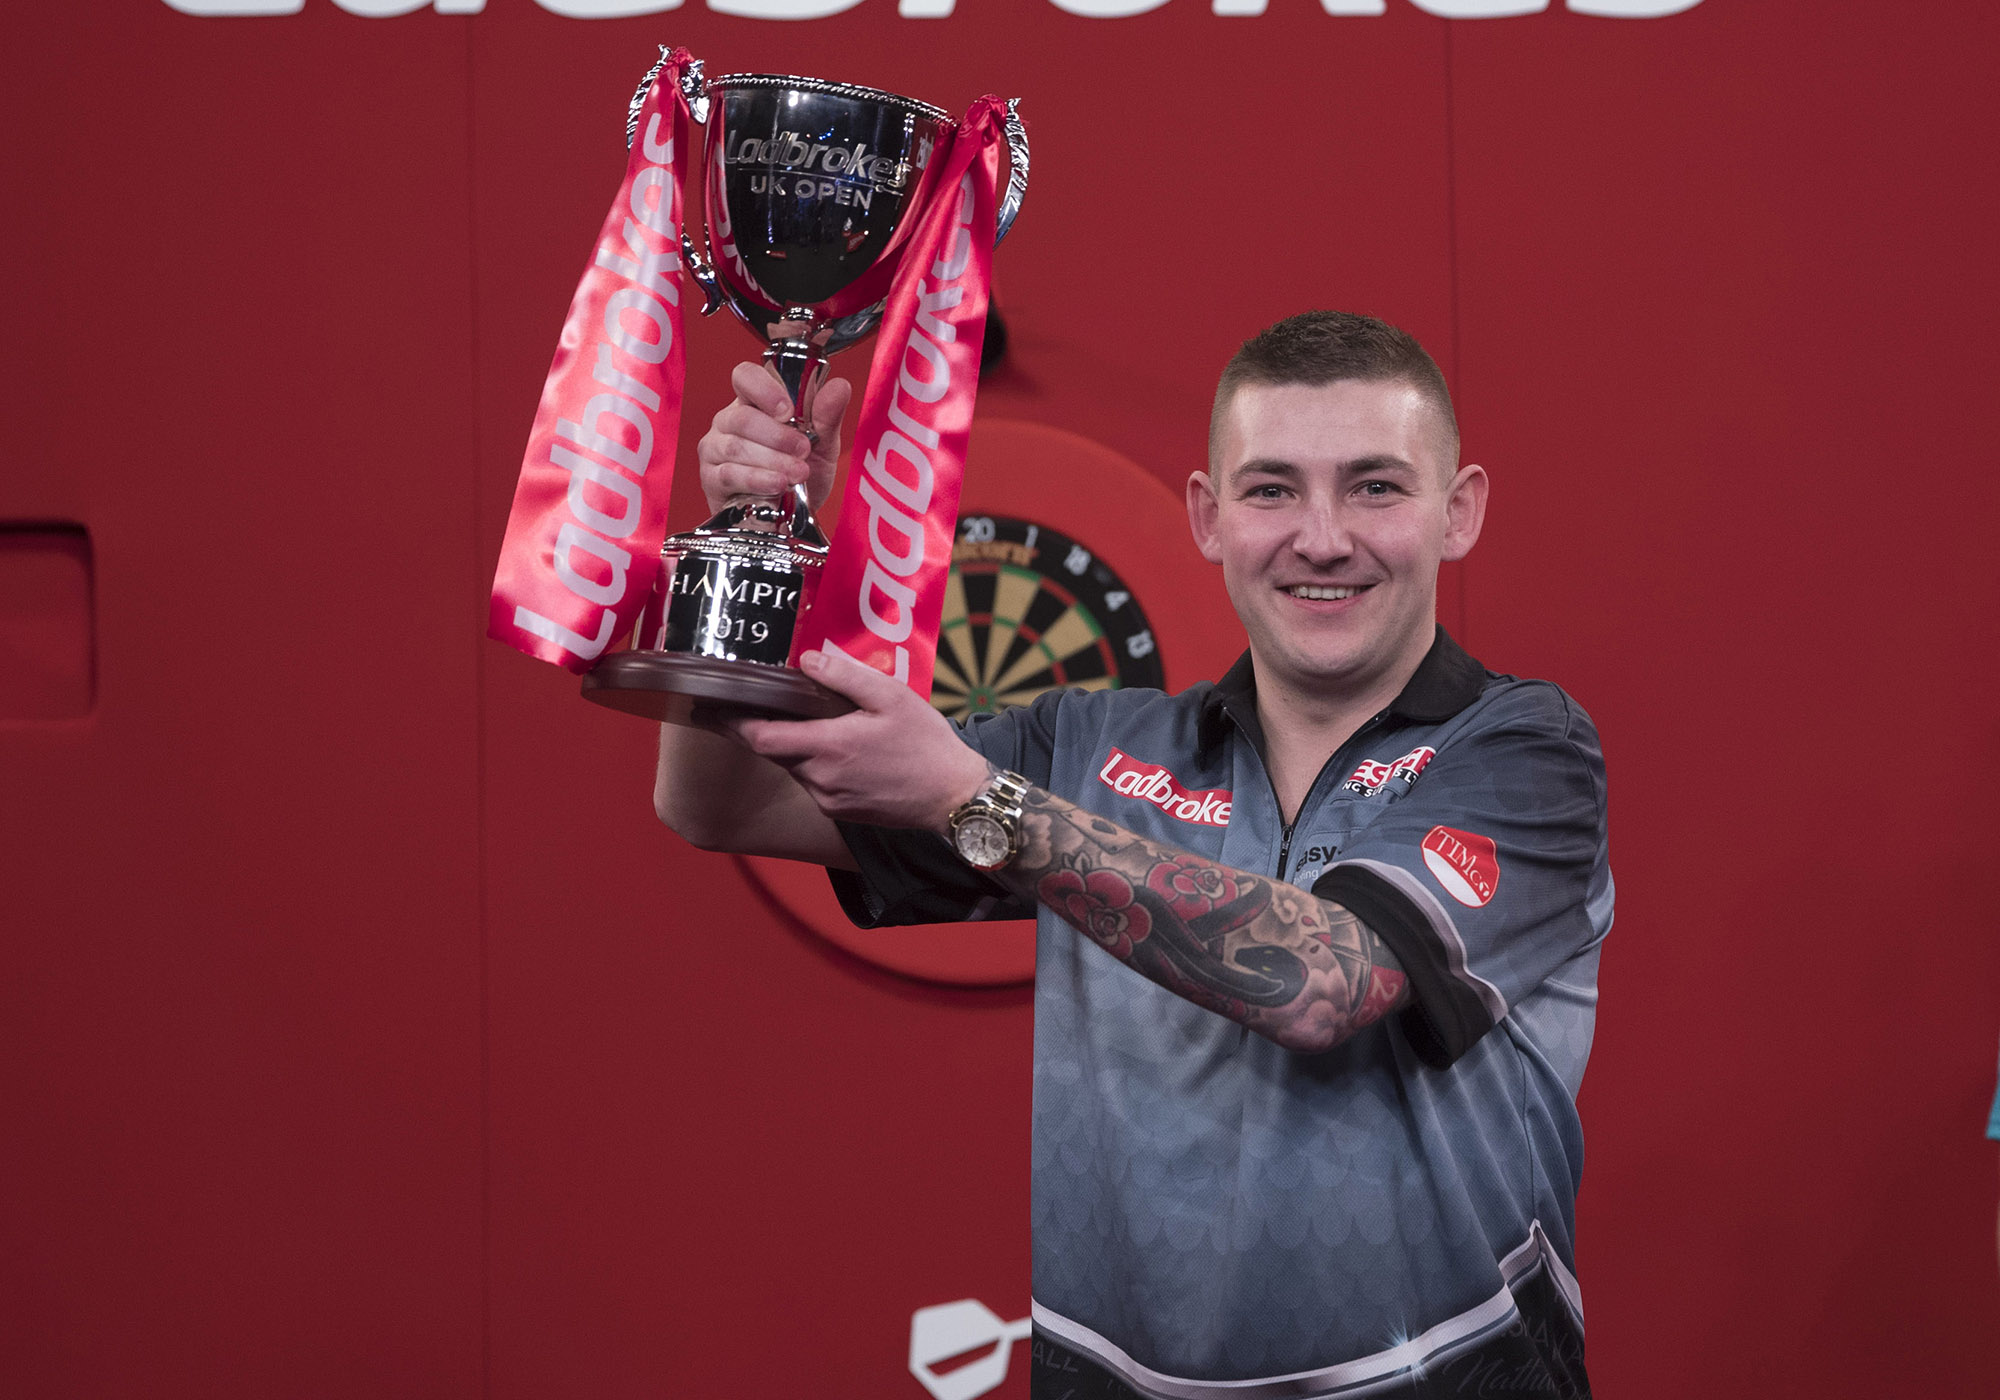 Five things we learned from the 2019 UK Open as new powers rise on the oche